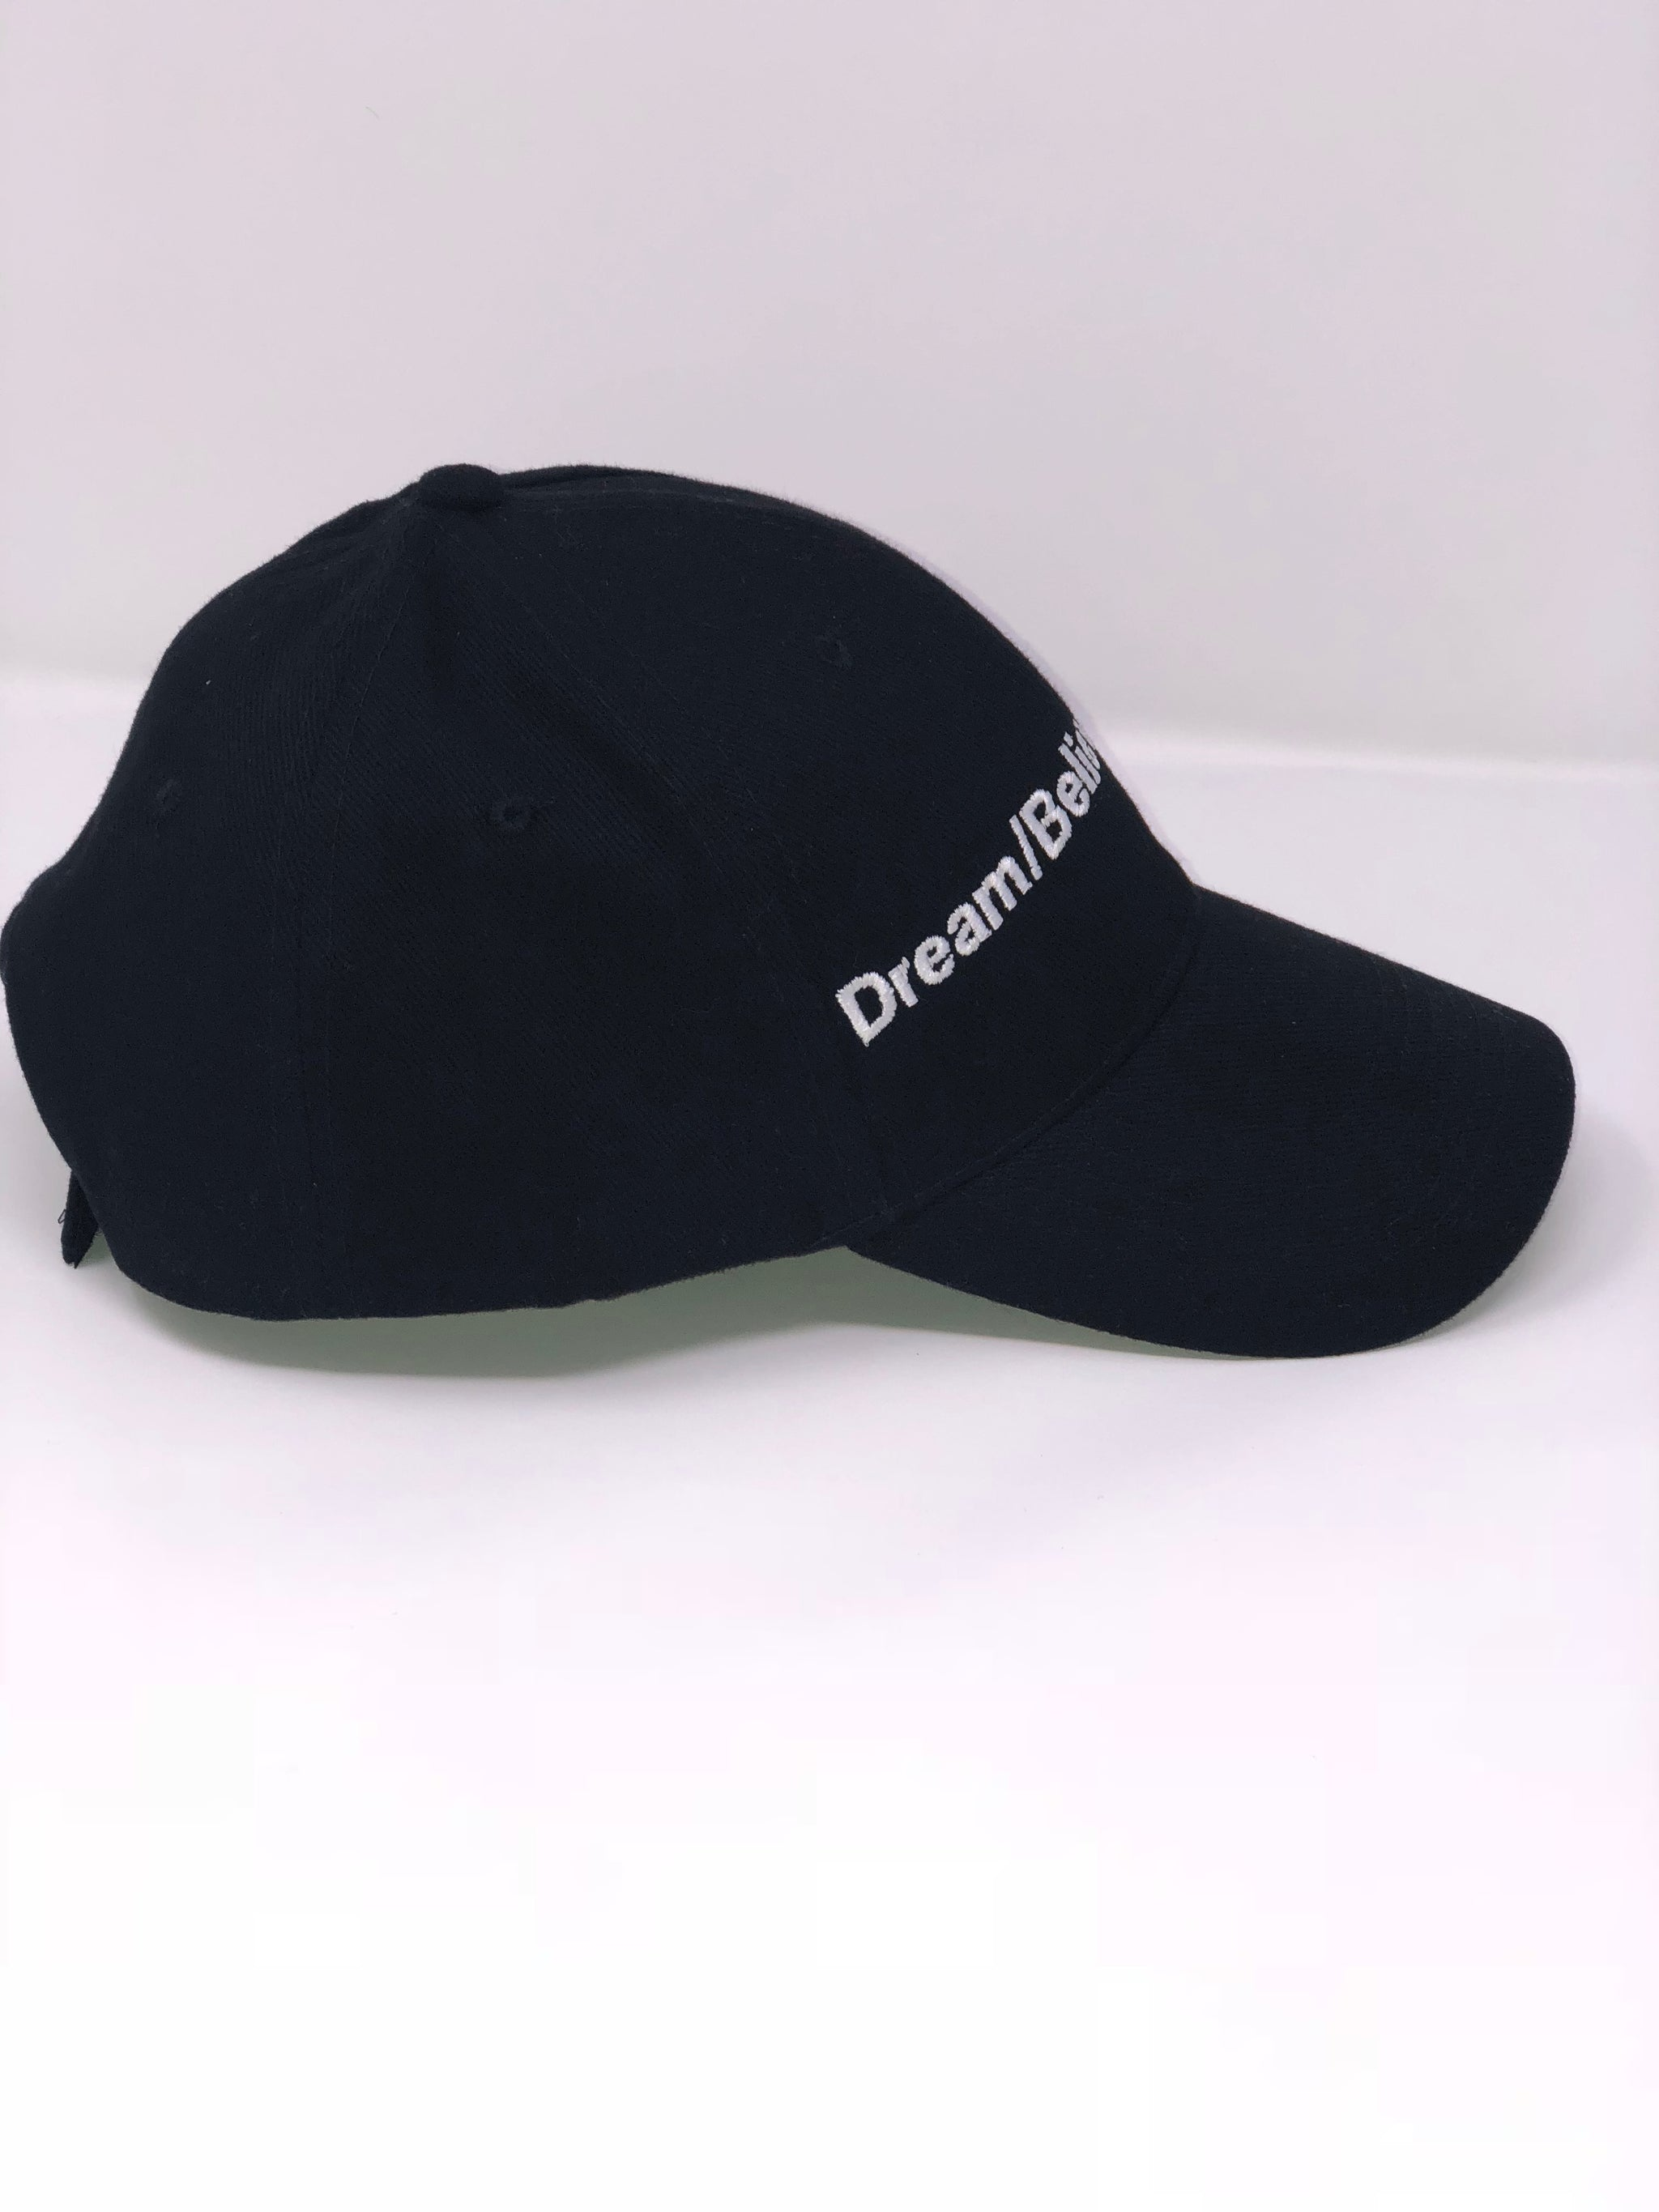 DREAM | BELIEVE | ACHIEVE Baseball cap A7 logo Light profile image